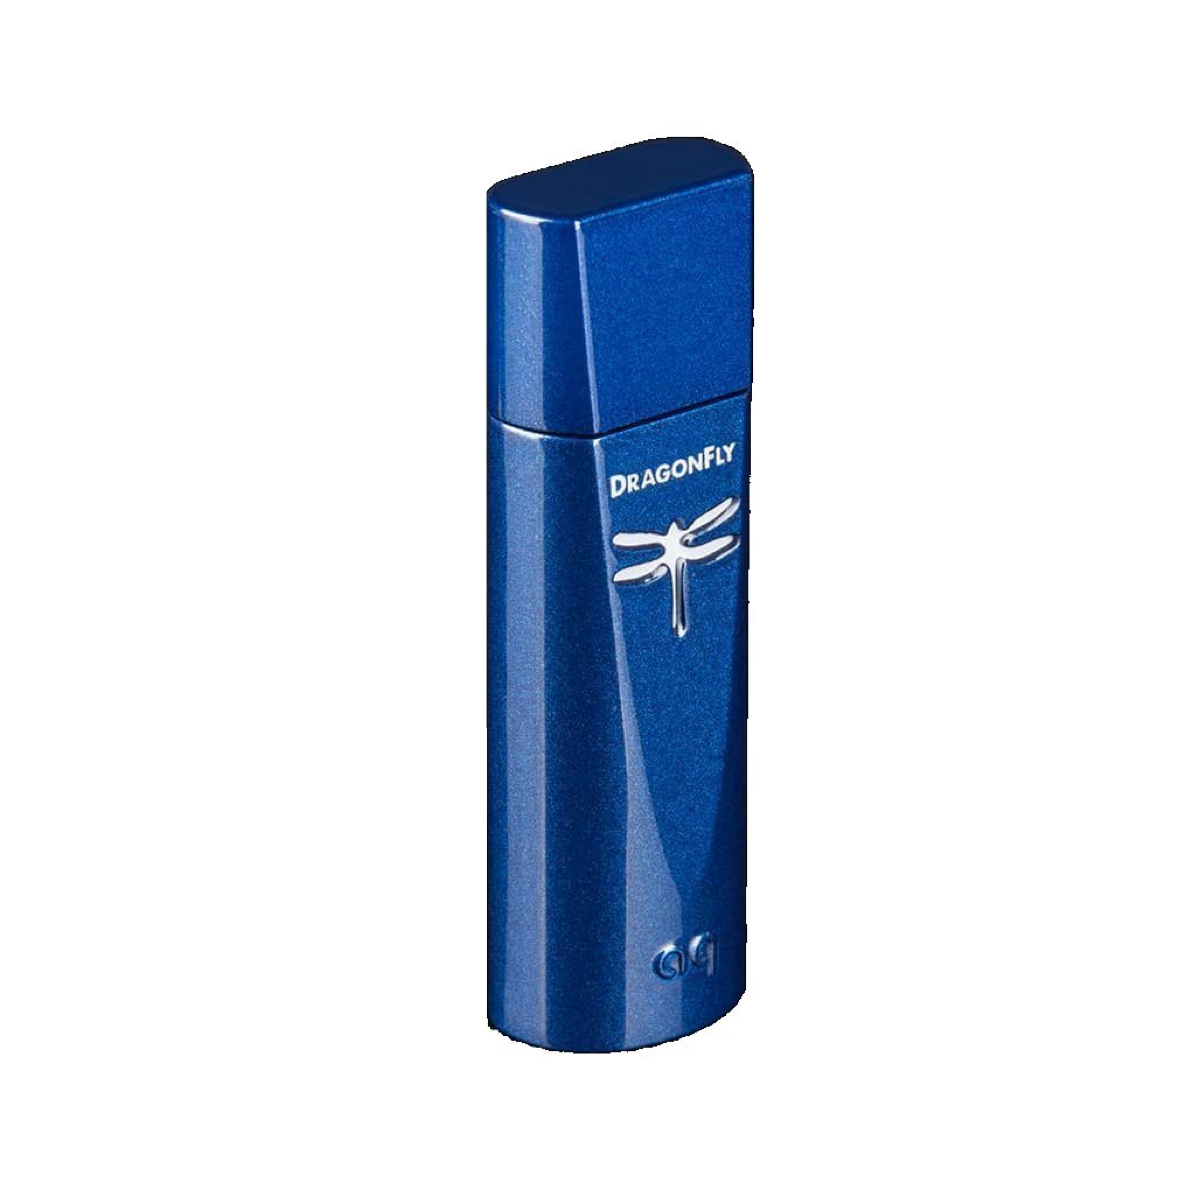 AudioQuest Dragonfly Cobalt - AVStore.in